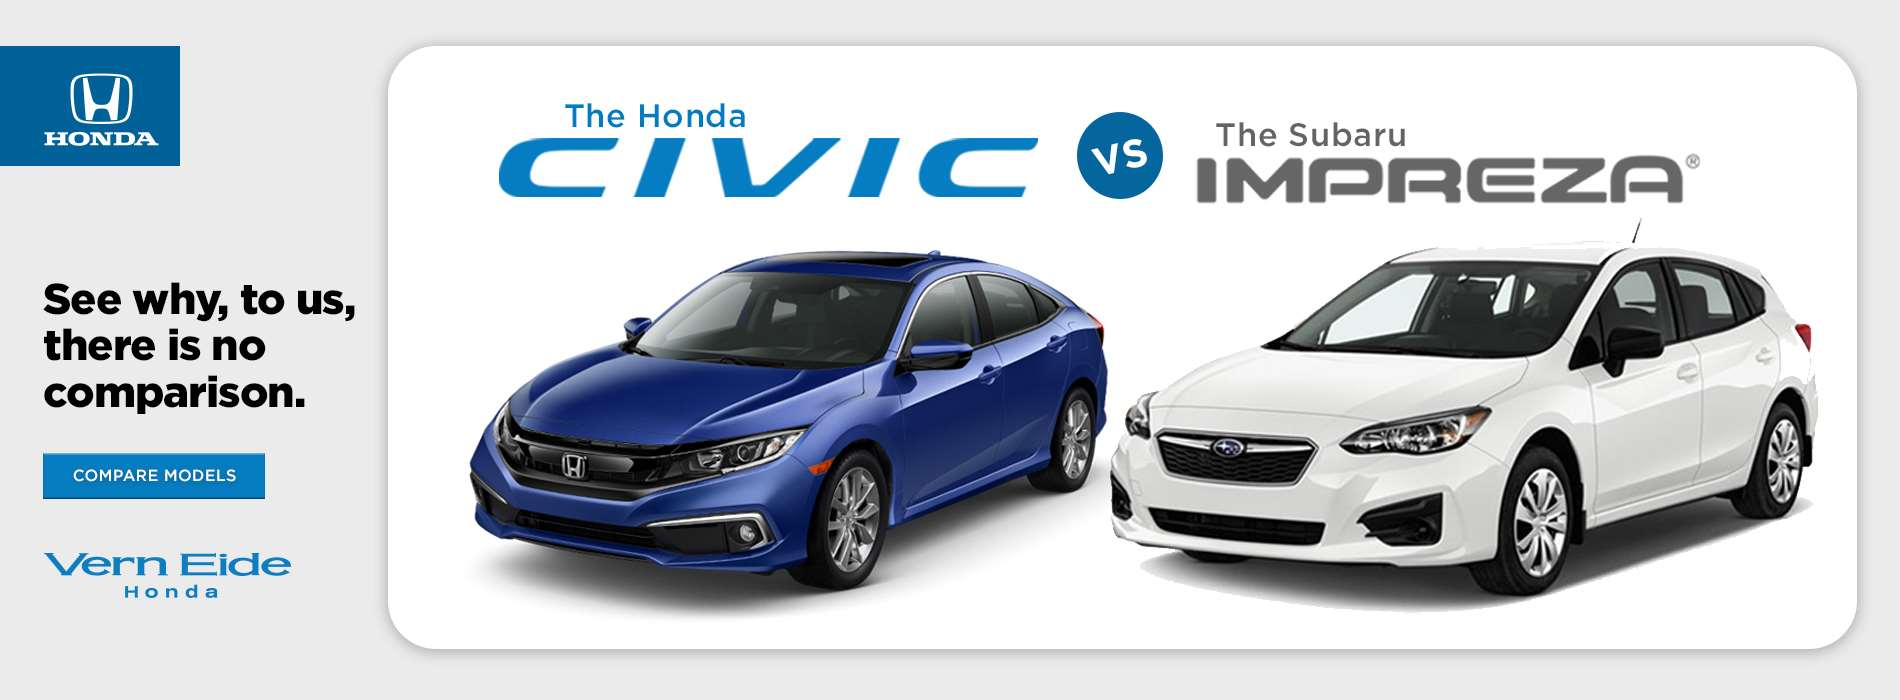 Civic vs Impreza